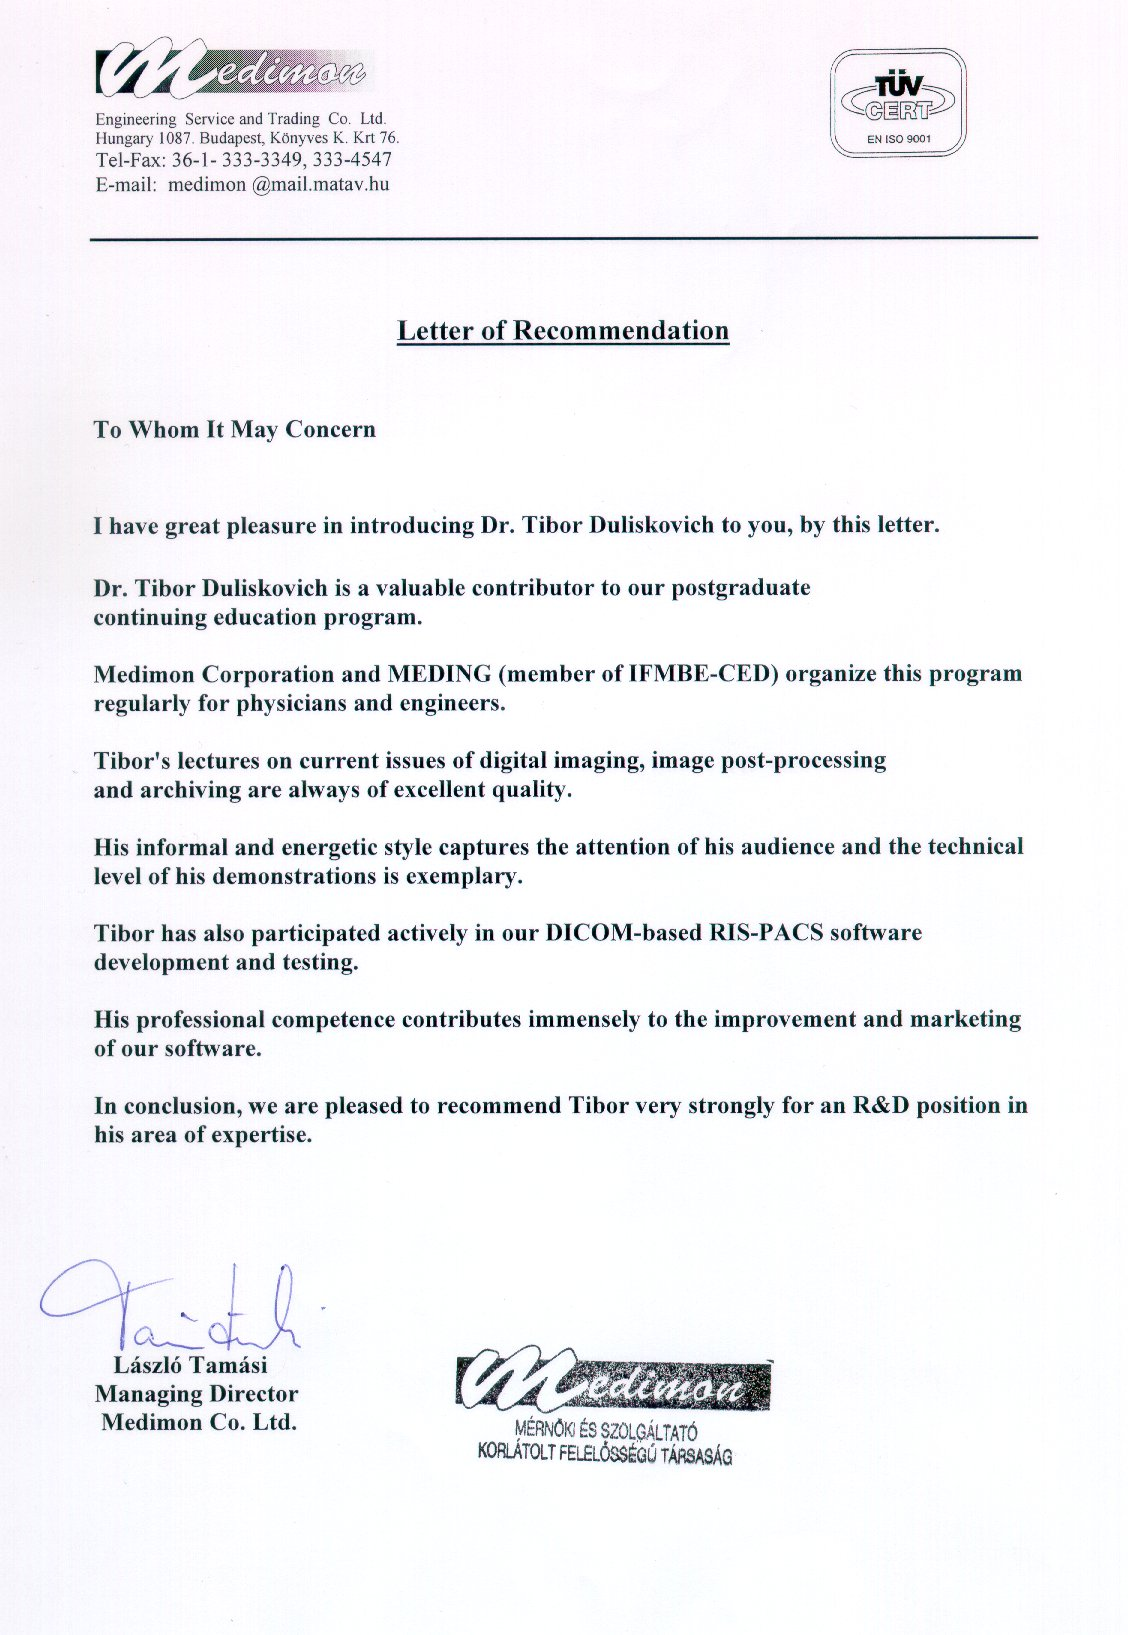 recommendations for dr tibor duliskovich dr tibor to you by this letter dr tibor is a valuable contributor to our postgraduate continuing education program